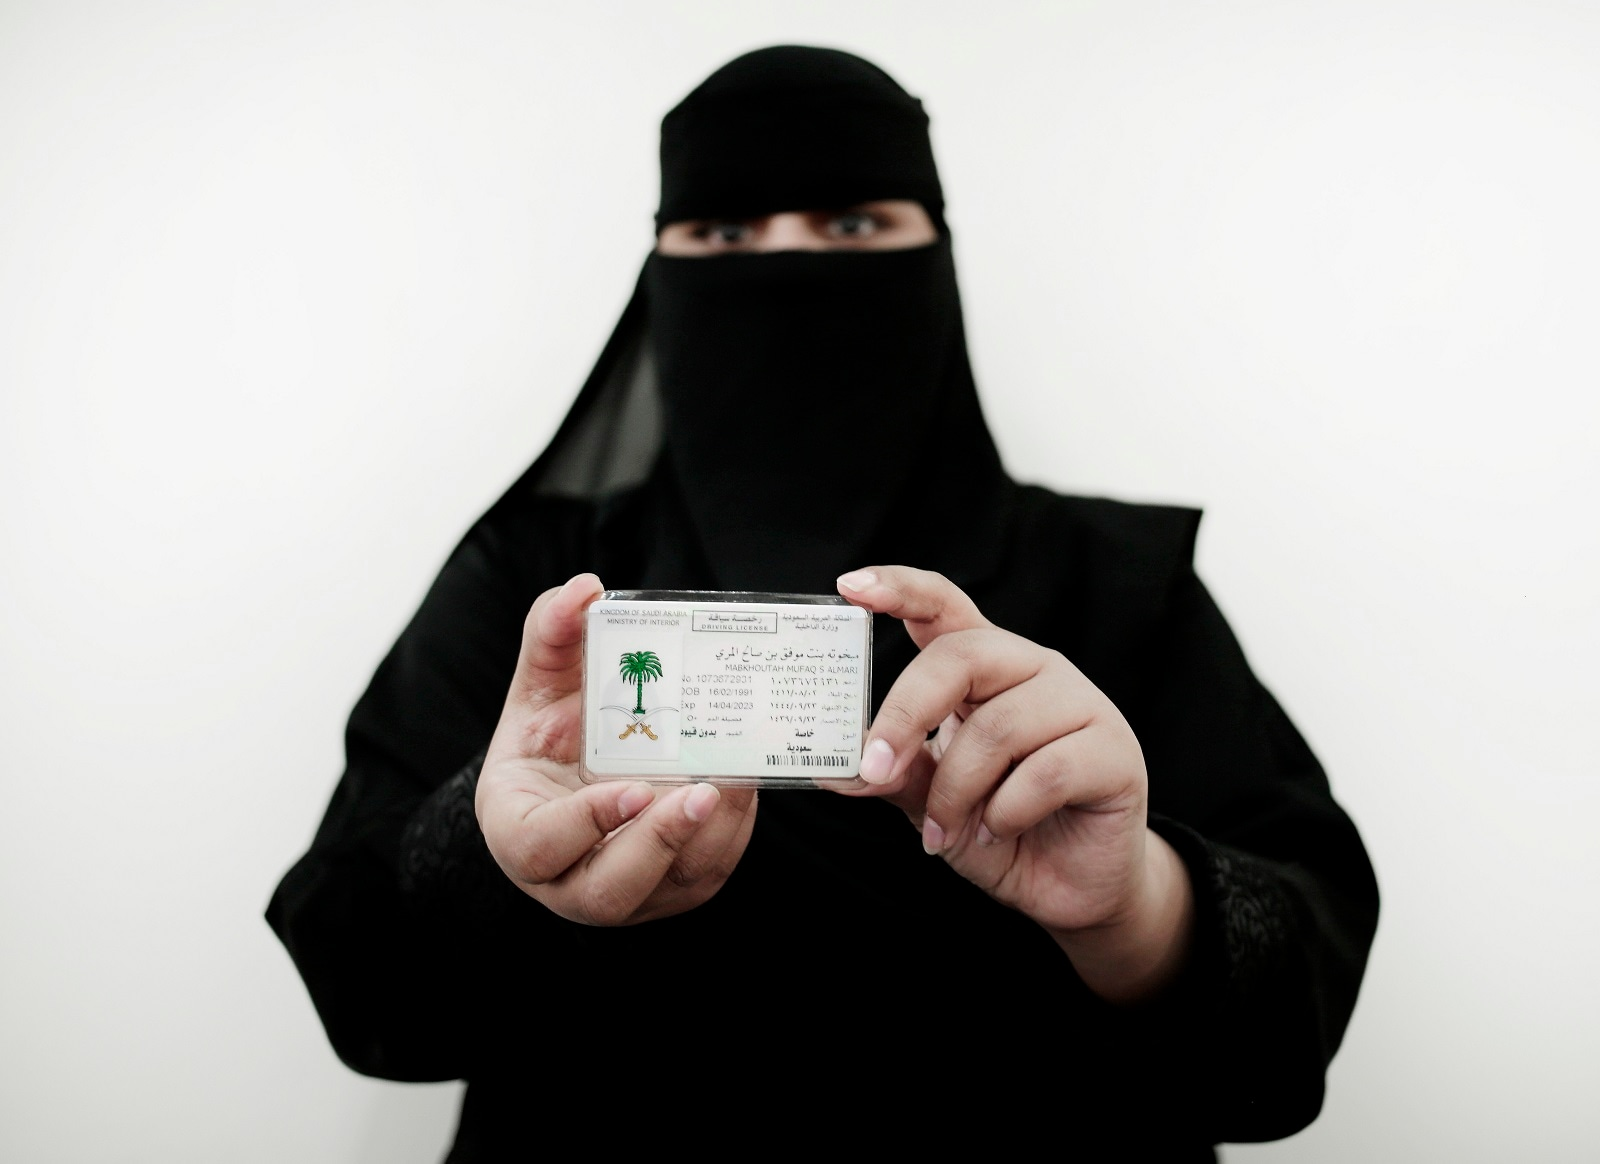 In this June 23, 2018 photo, 27-year old Mabkhoutah al-Mari poses for a photograph holding her new car license at the Saudi Driving School inside Princess Nora University in Saudi Arabia. (AP Photo/Nariman El-Mofty)